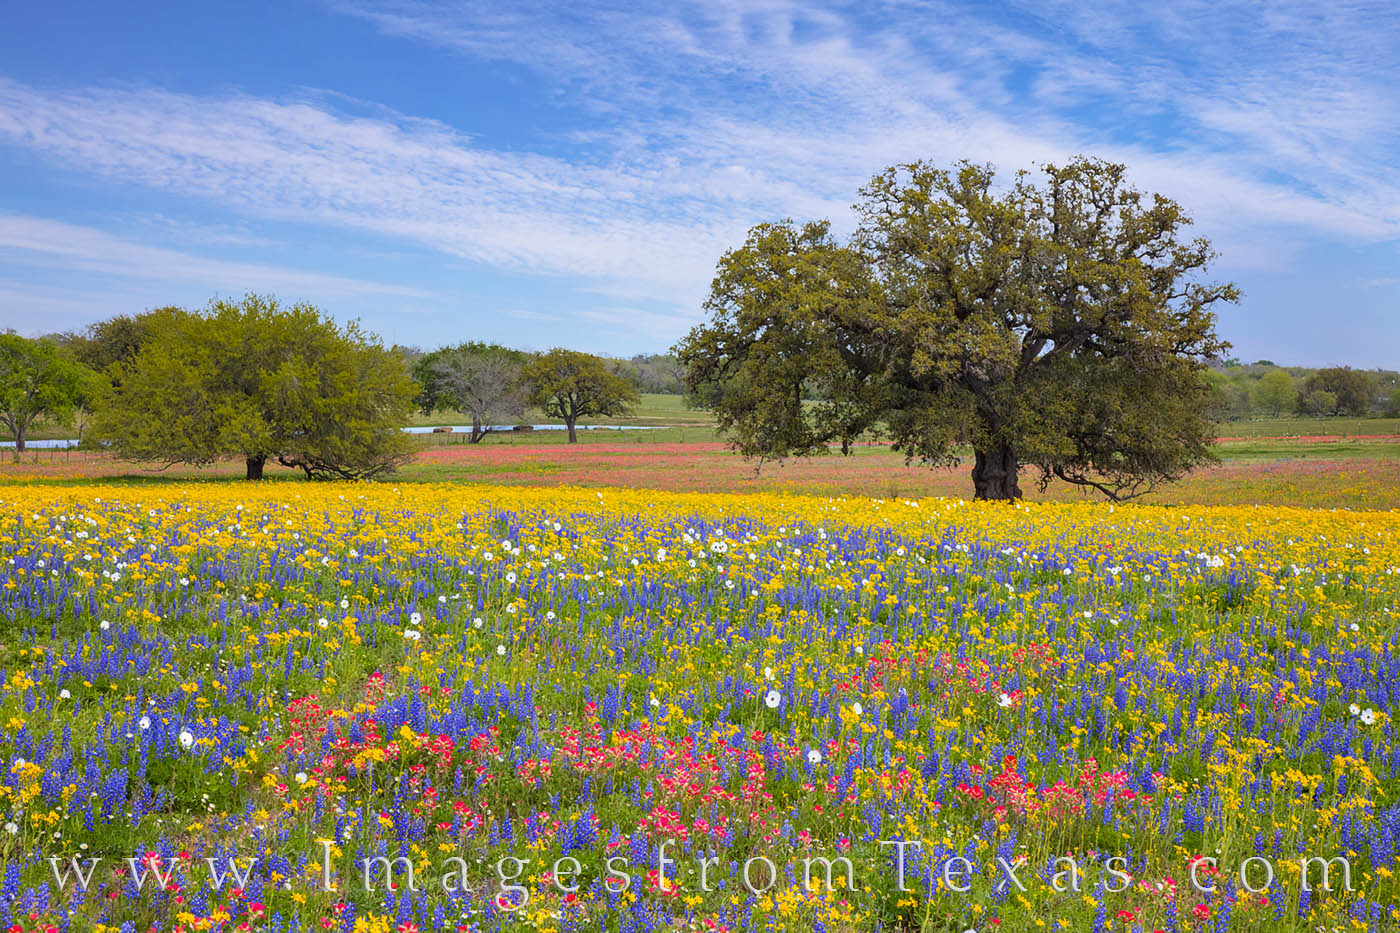 Atascosa county, poteet, wildflowers, bluebonnets, paintbrush, afternoon, color, red, blue, yellow, texas wildflowers, south texas, san antonio, spring, spring flowers, wheeler road